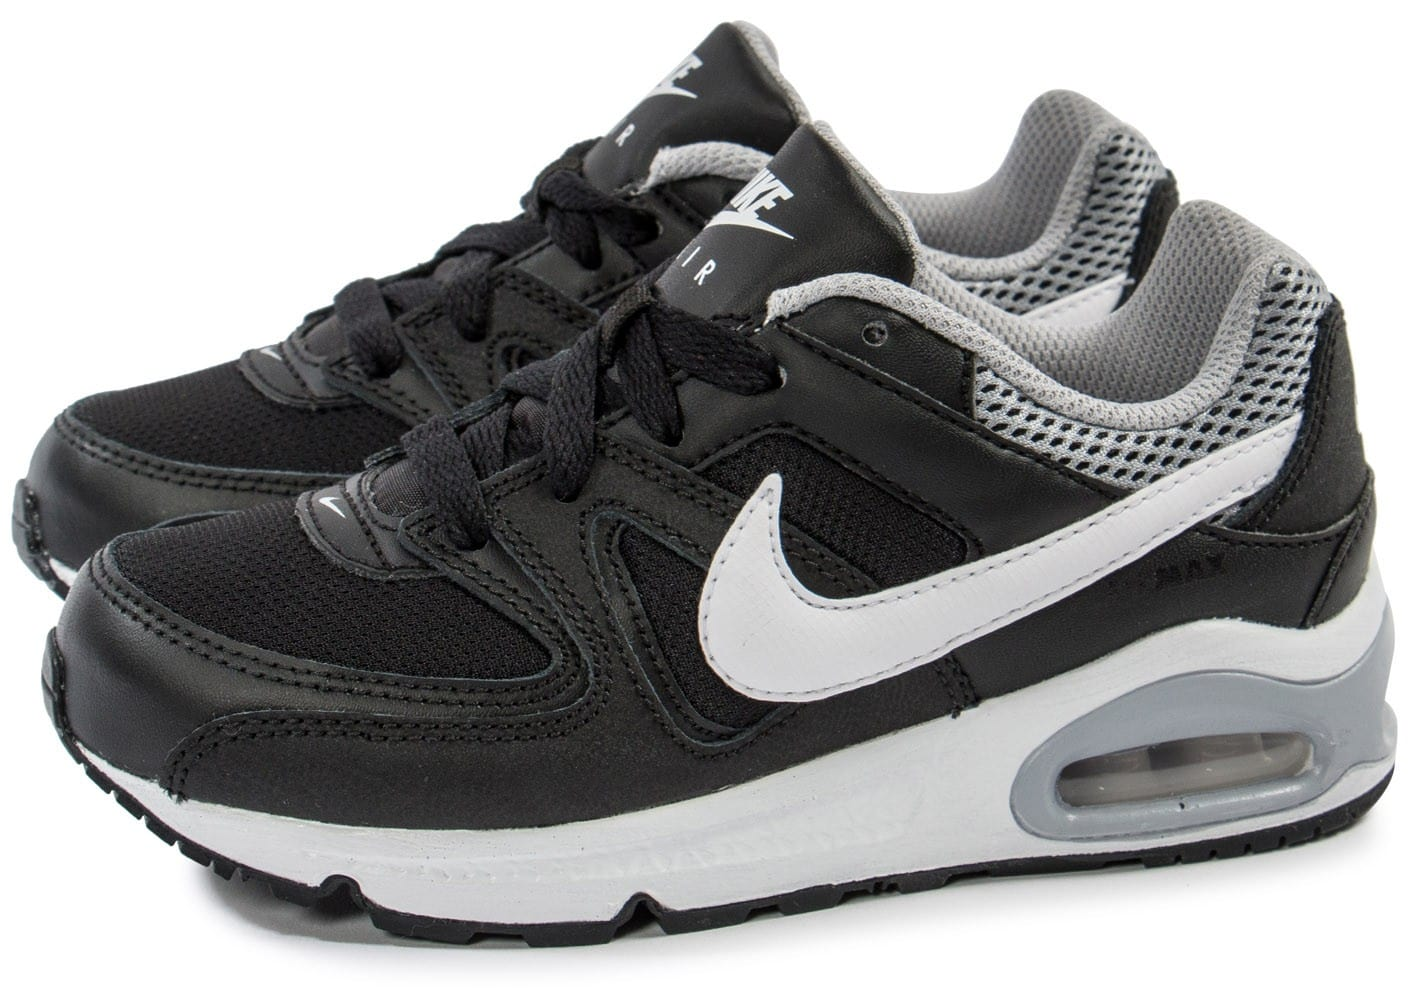 nike air max command noir et gris enfant running enfant tom cruise steven spielberg. Black Bedroom Furniture Sets. Home Design Ideas